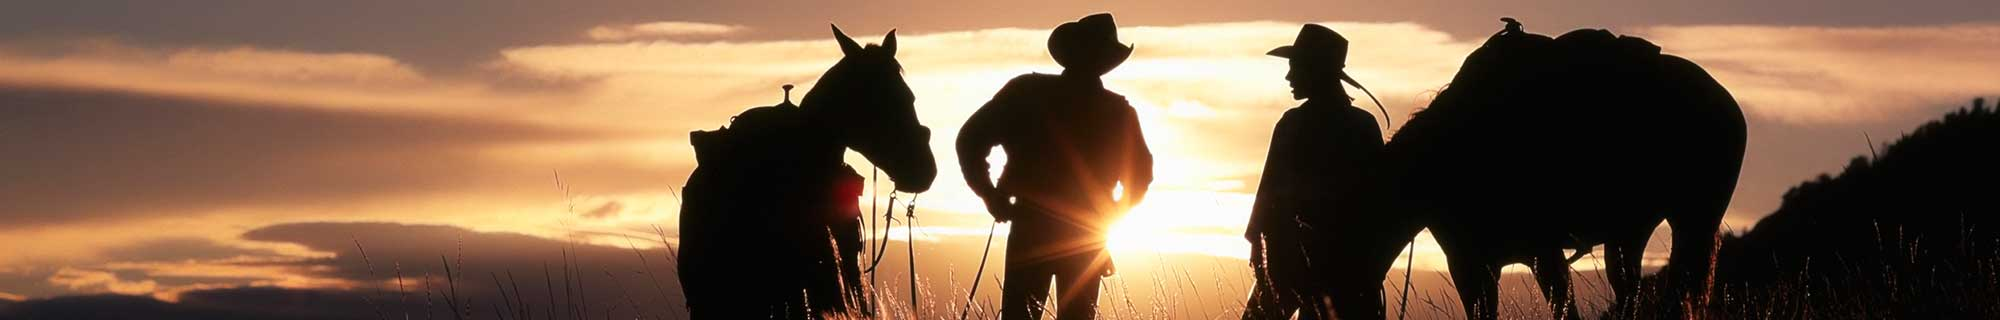 sunset cowboys